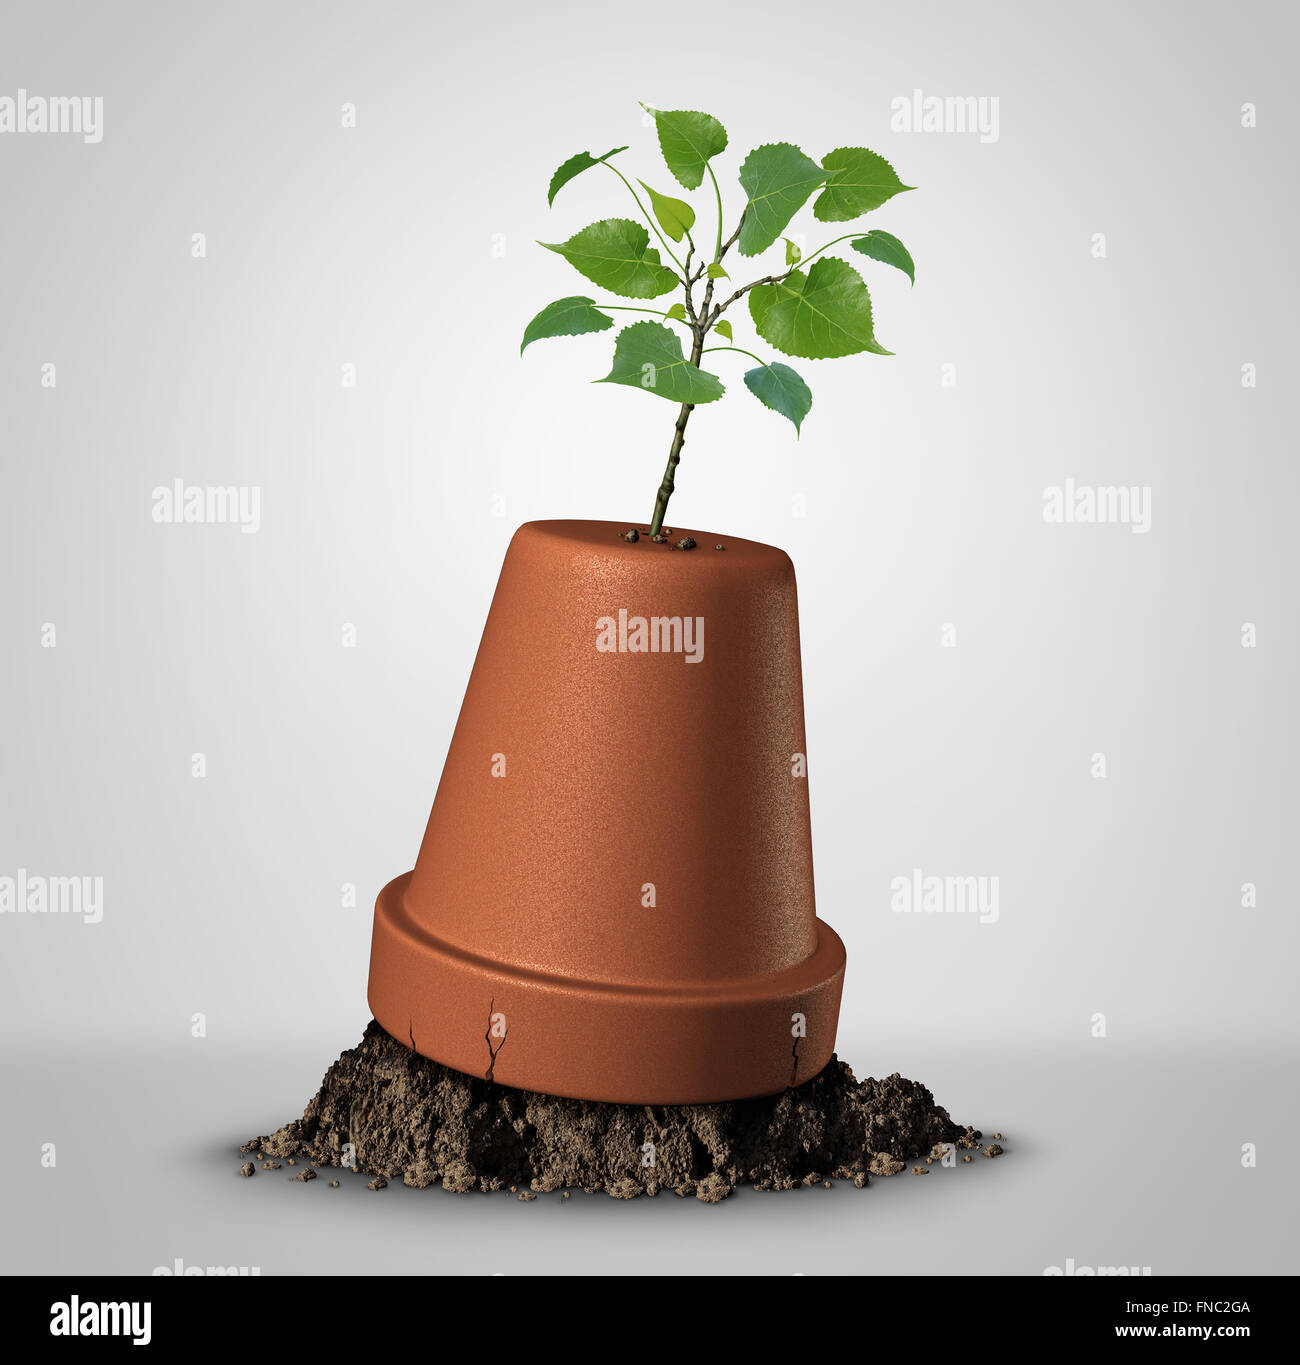 Never give up hope concept of persistence and the unstoppable force of nature as a sapling plant emerging out of - Stock Image